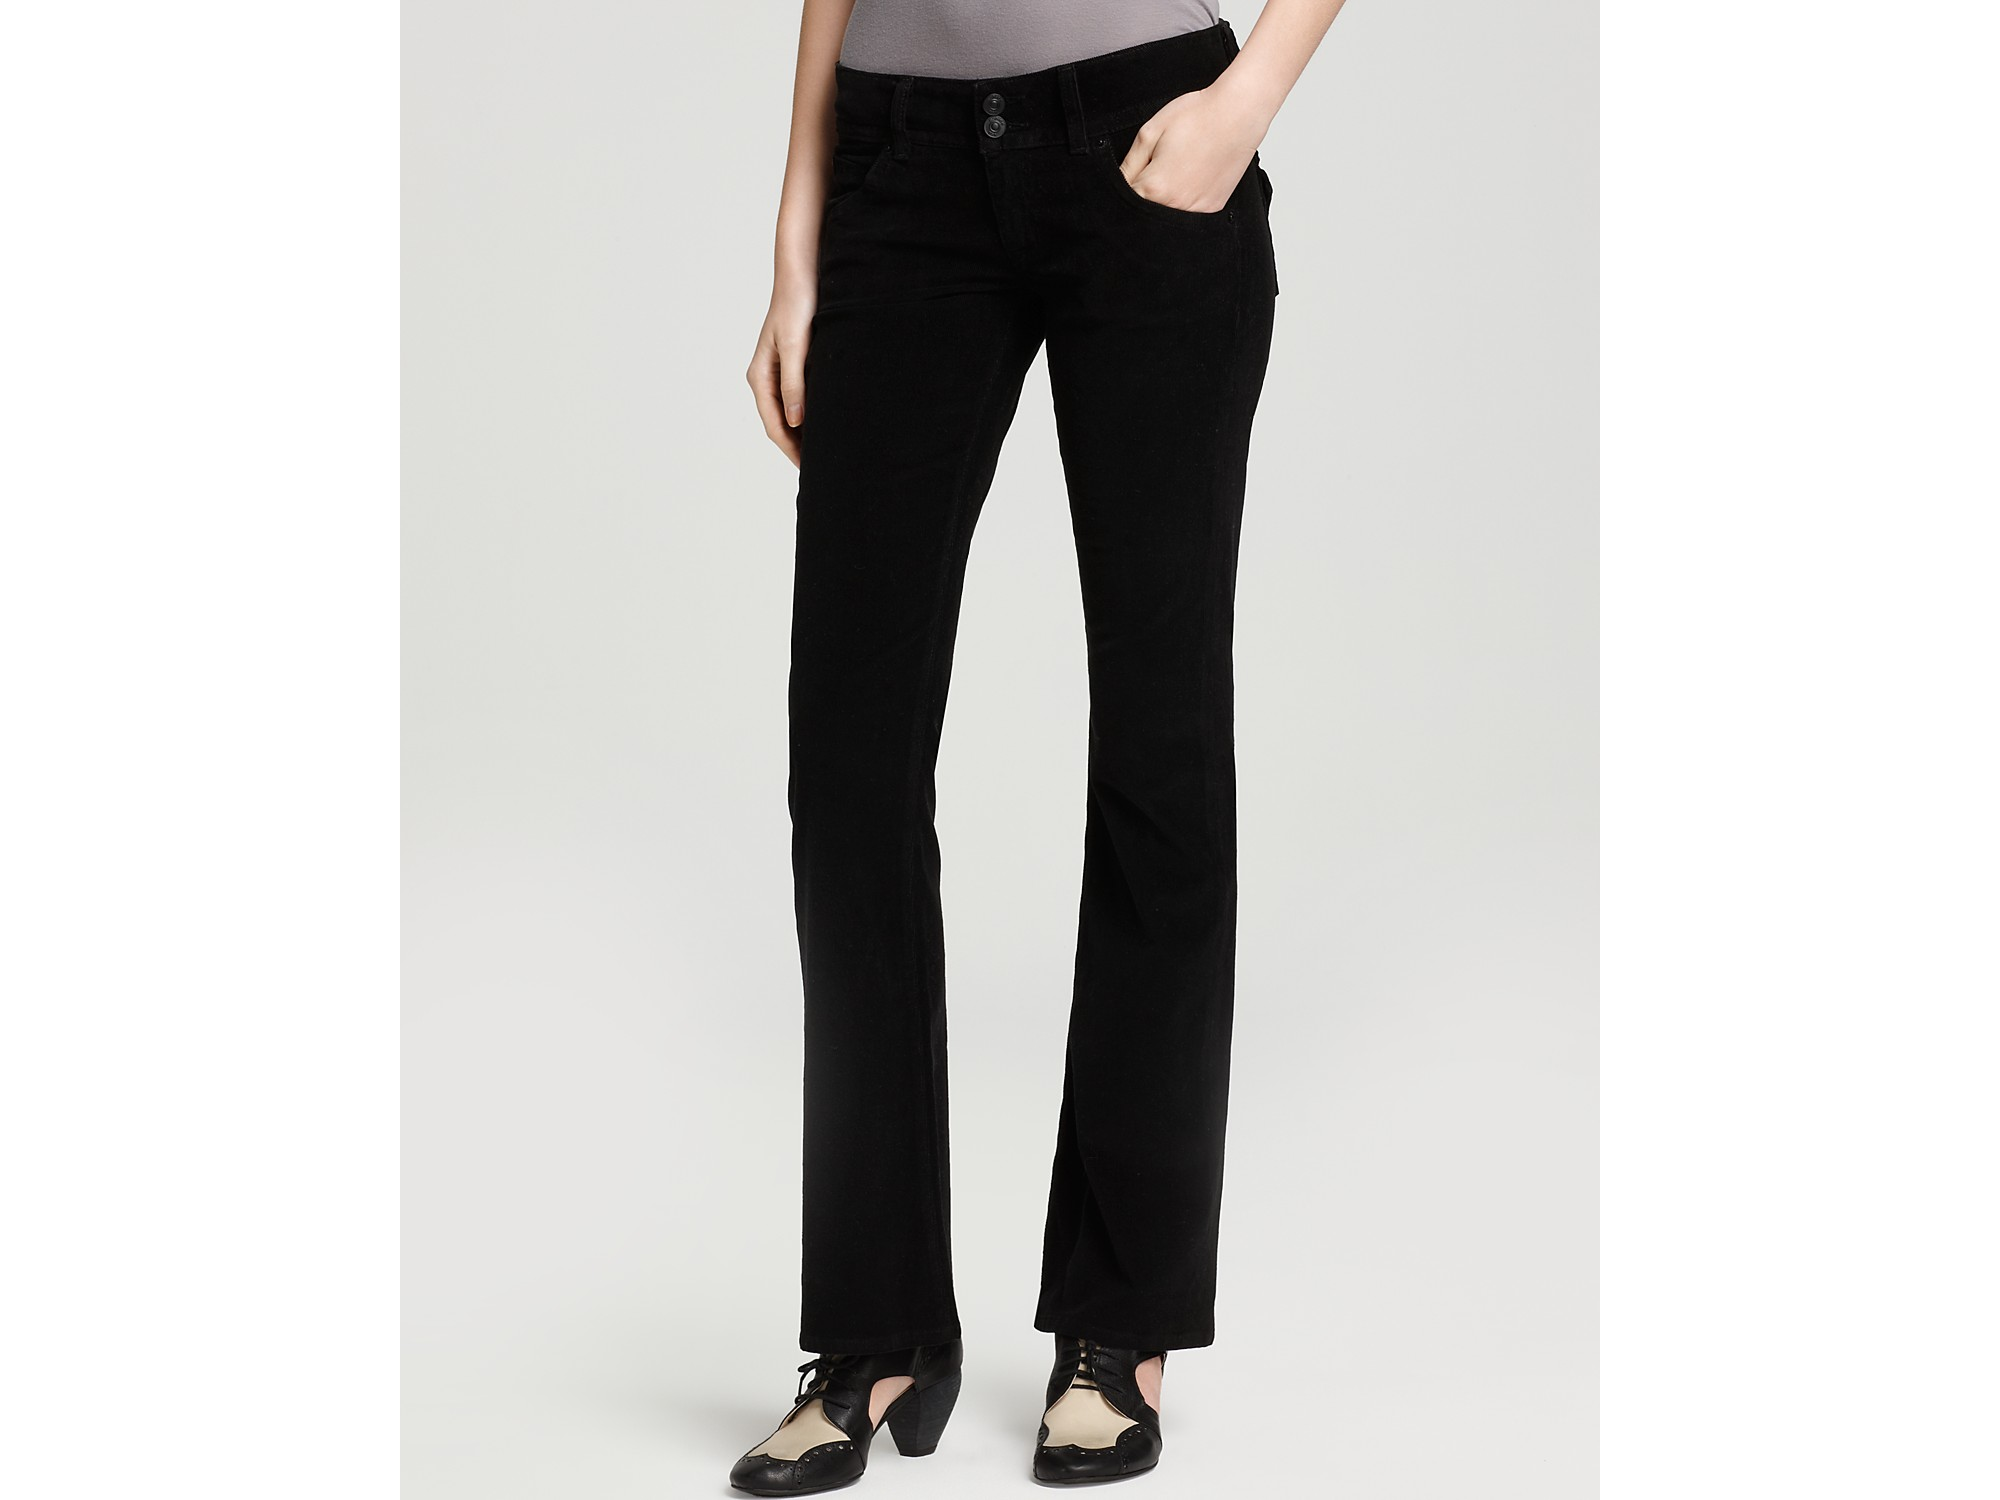 Hudson jeans Signature Bootcut Corduroy Pants in Black | Lyst